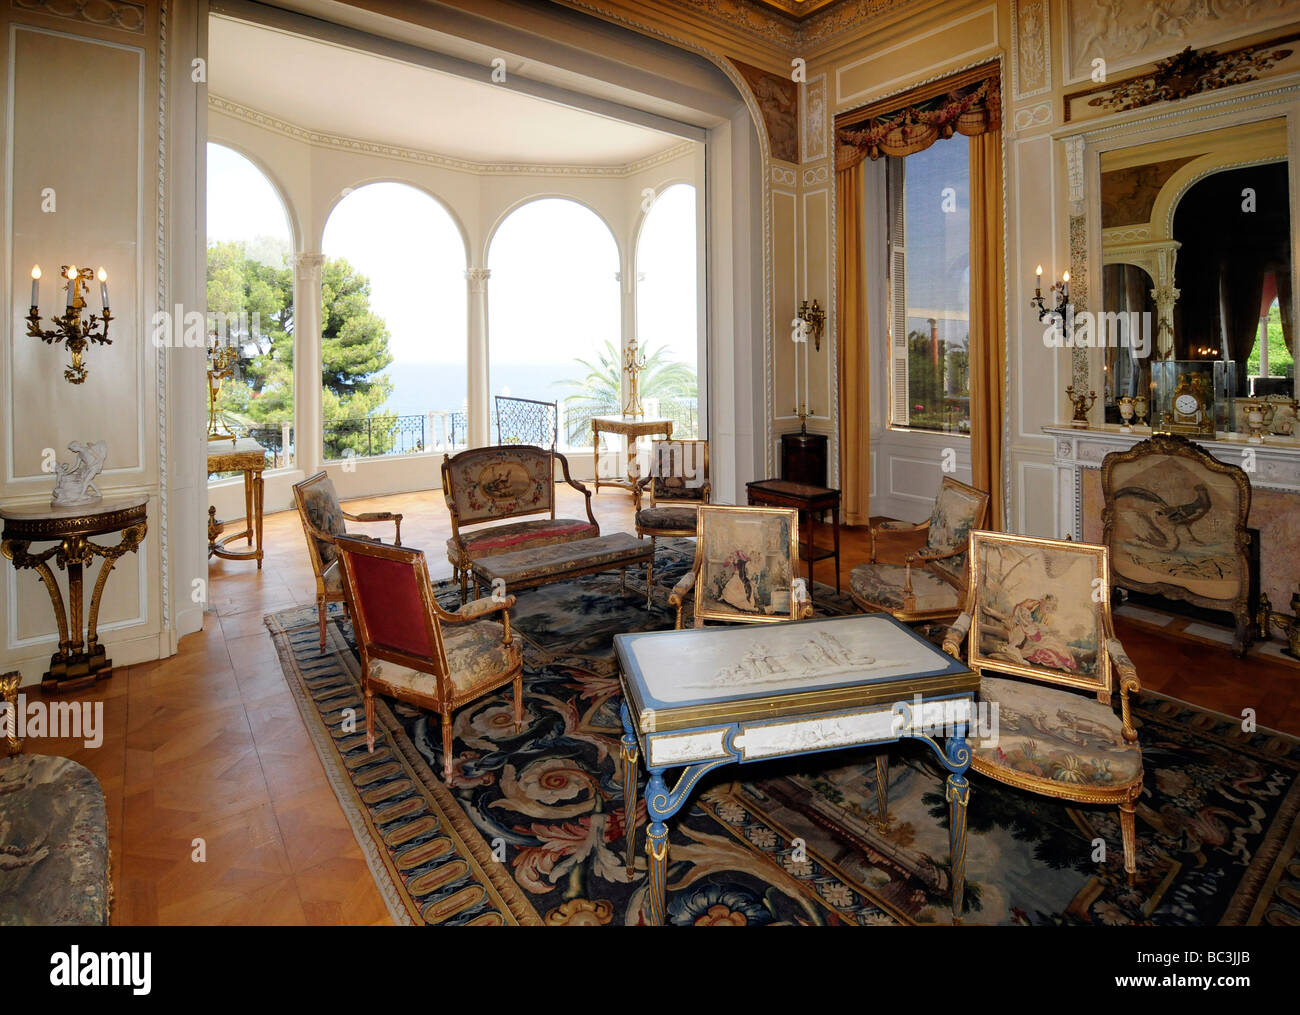 Interior of the villa ephrussi de rothschild a french for Interieur in french